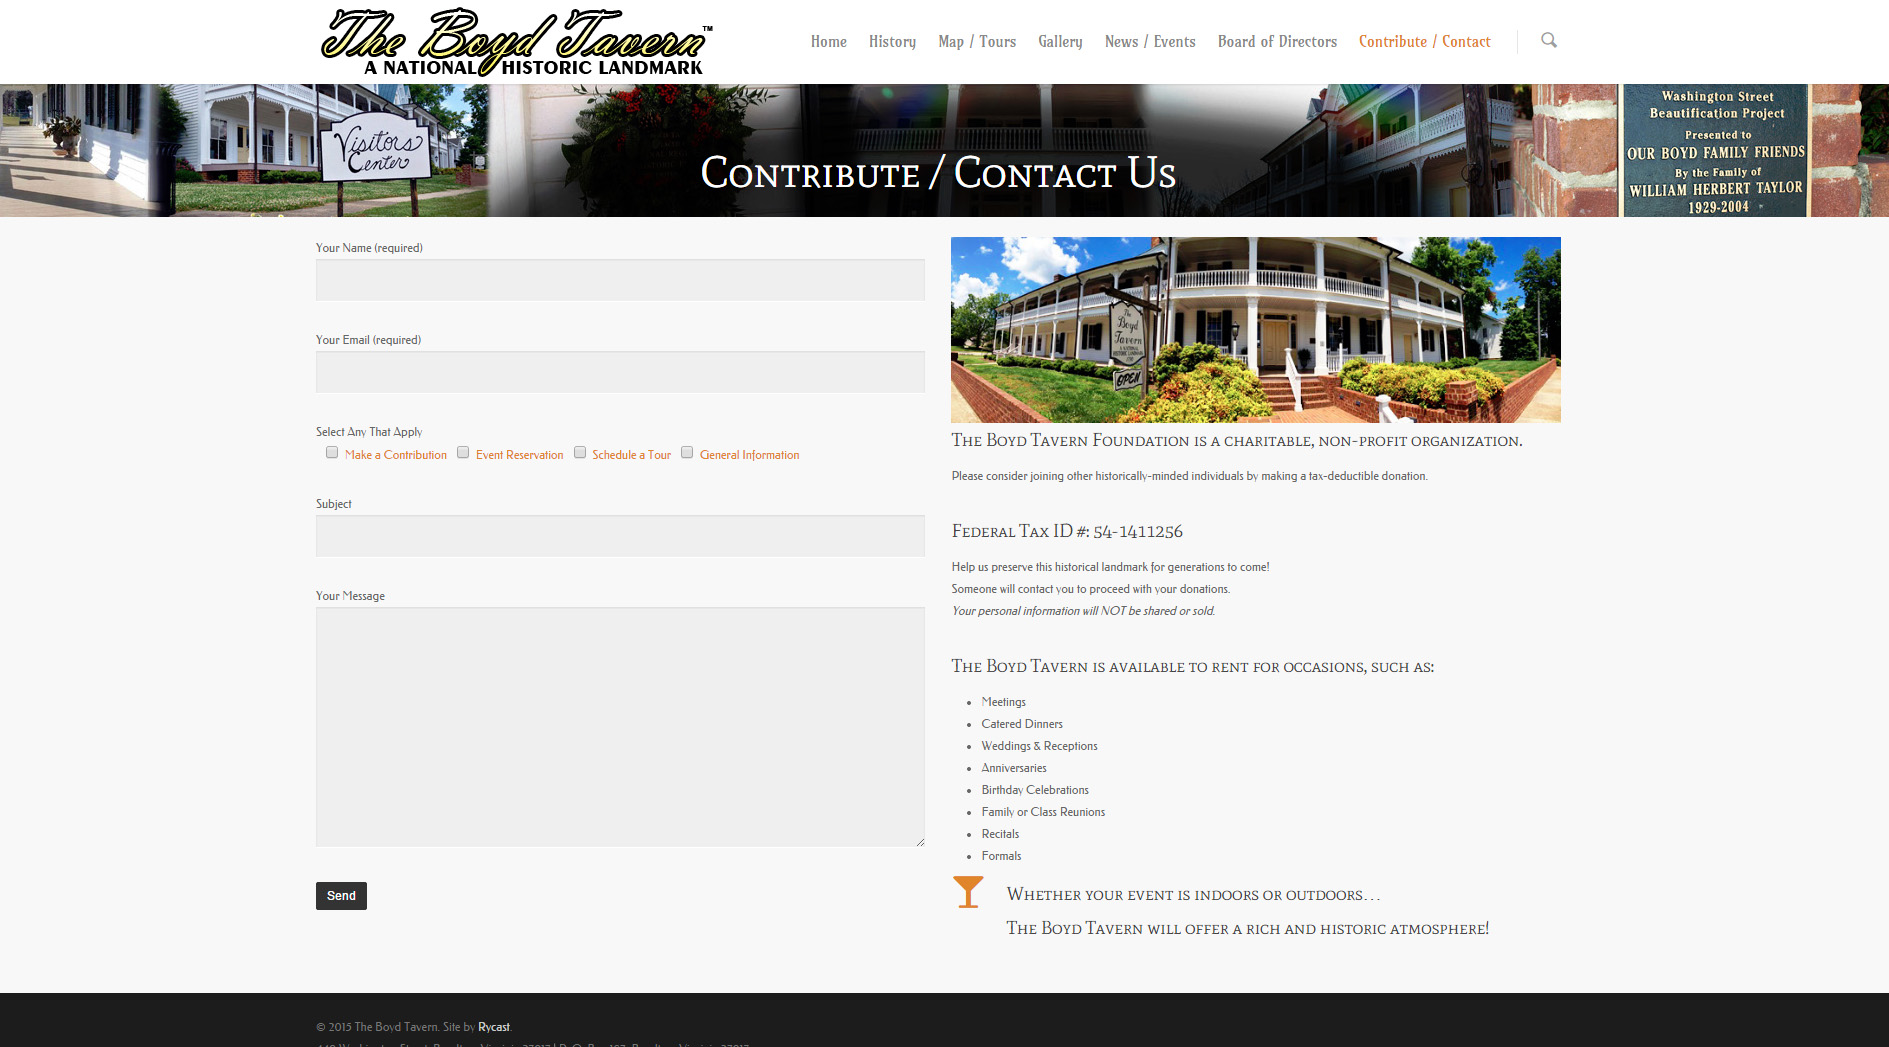 The contact us page features a fully-functional contact form.